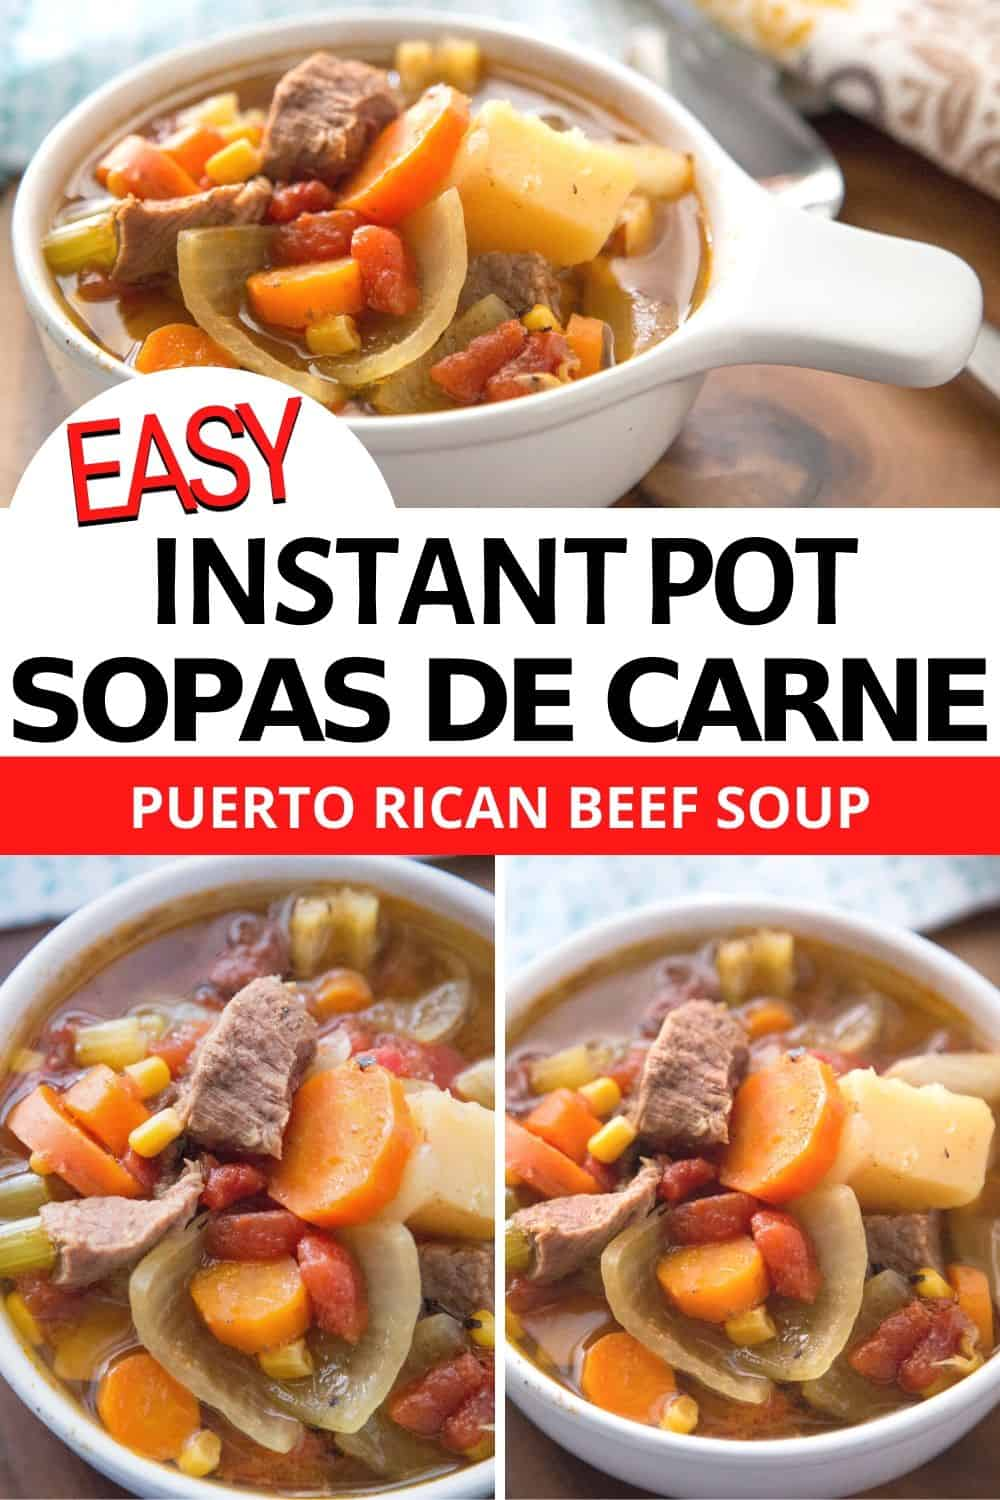 Check out this Instant Pot Sopa de Carne recipe or Puerto Rican Beef Soup recipe that you and your family are going to love. Slow cooker recipe available. via @mystayathome